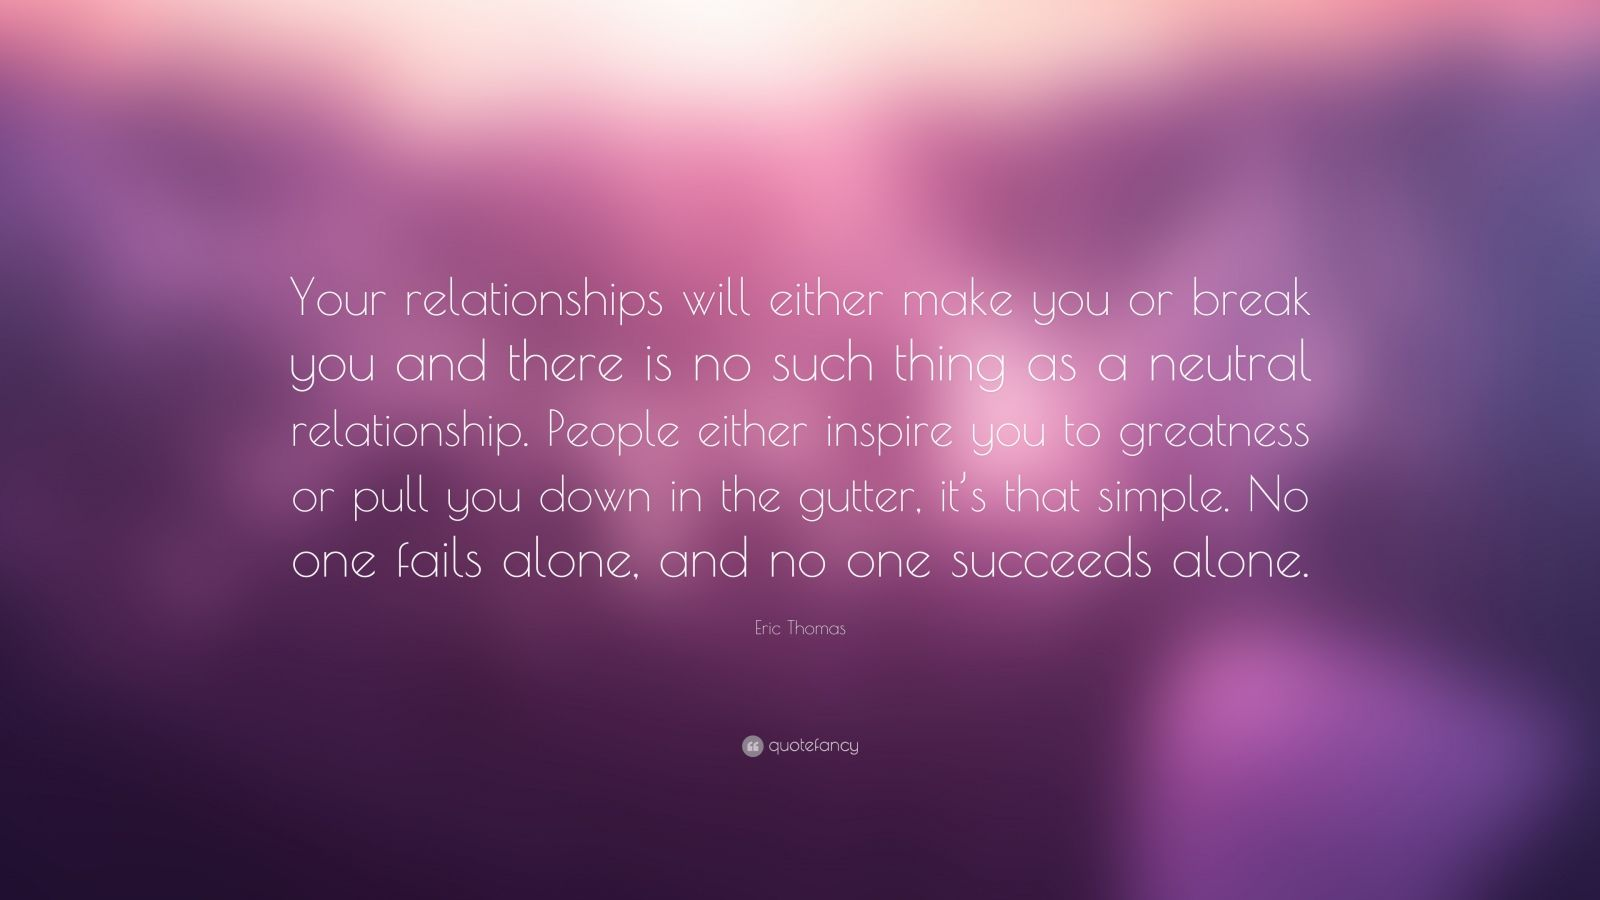 """Eric Thomas Quote: """"Your relationships will either make you or break you and there is no such thing as a neutral relationship. People either inspire you to greatness or pull you down in the gutter, it's that simple. No one fails alone, and no one succeeds alone."""""""